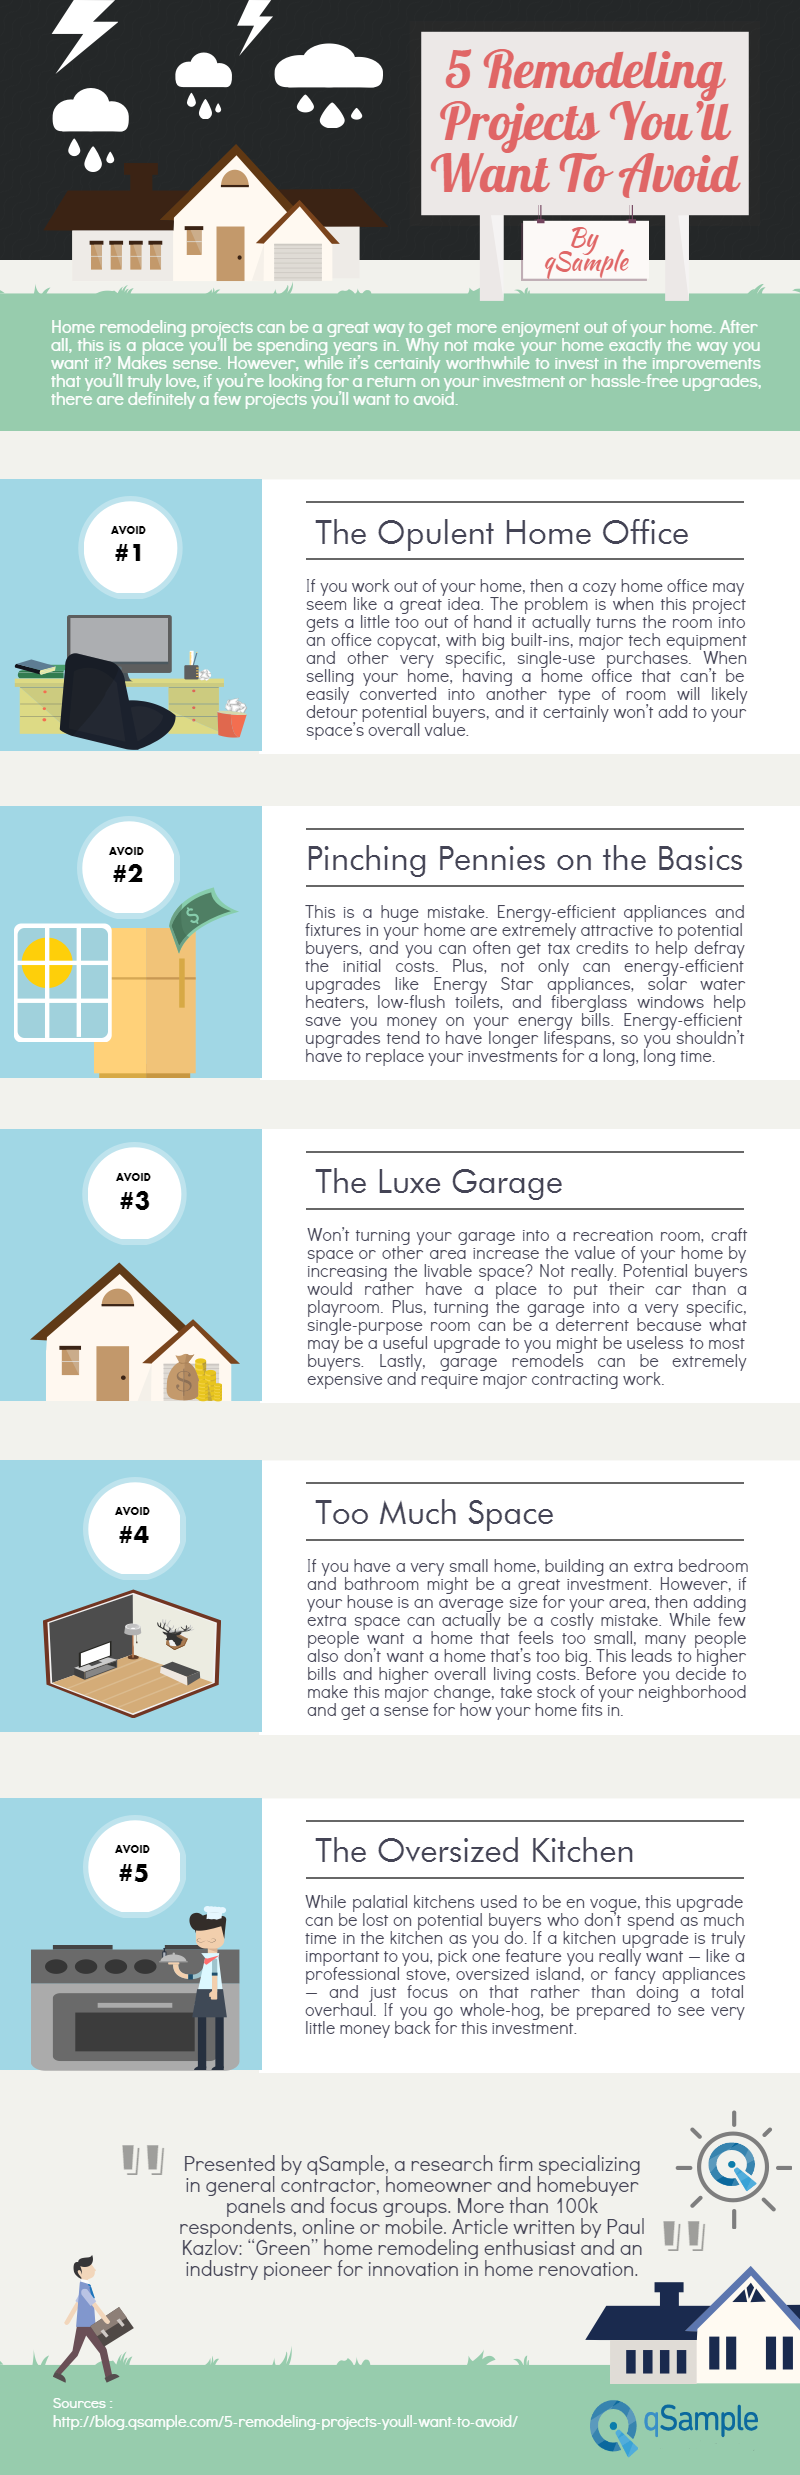 Infographic: 5 Remodeling Projects You'll Want To Avoid - An Infographic from qSample Blog